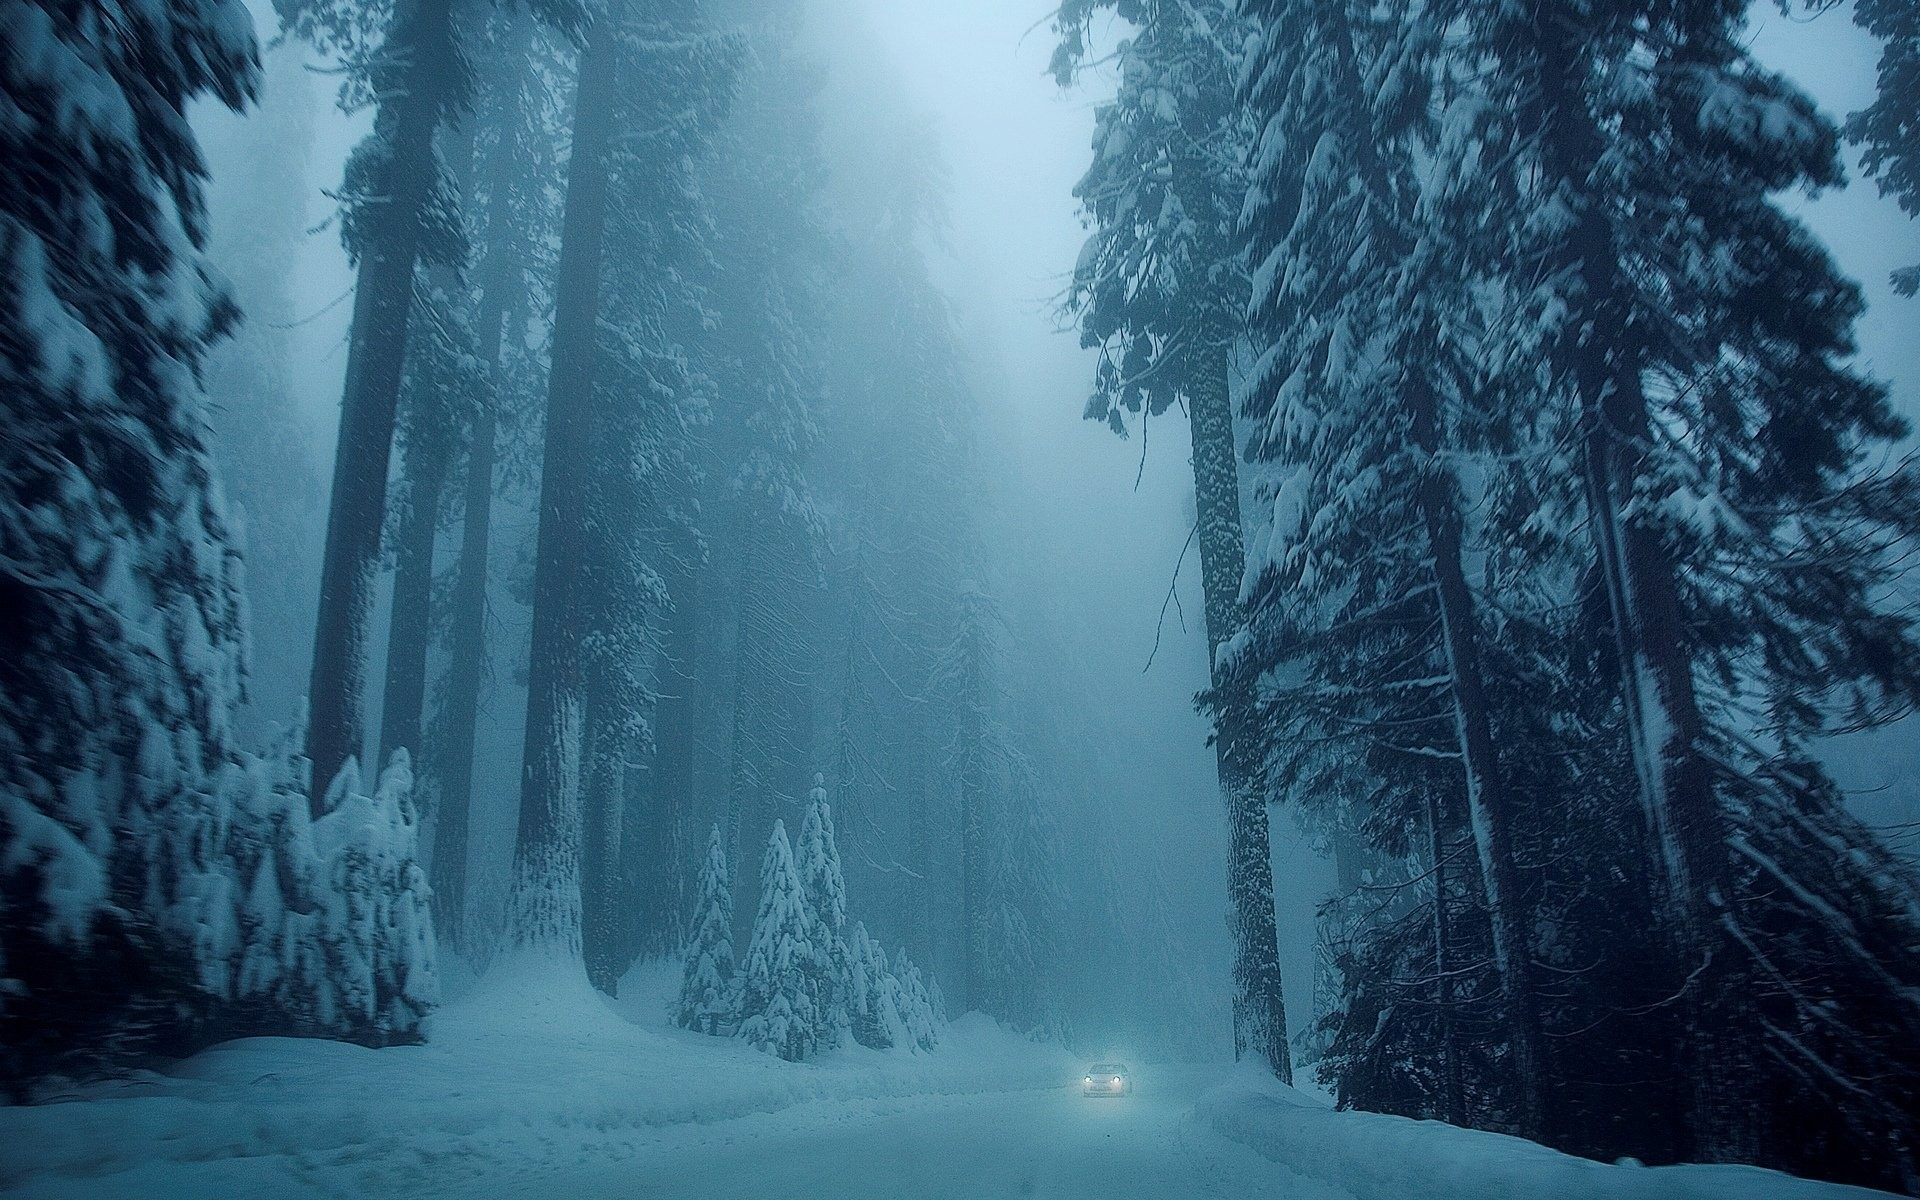 1920x1200 nature winter snow tree tree christmas tree road machine vehicles cool  winter nature car trees snow